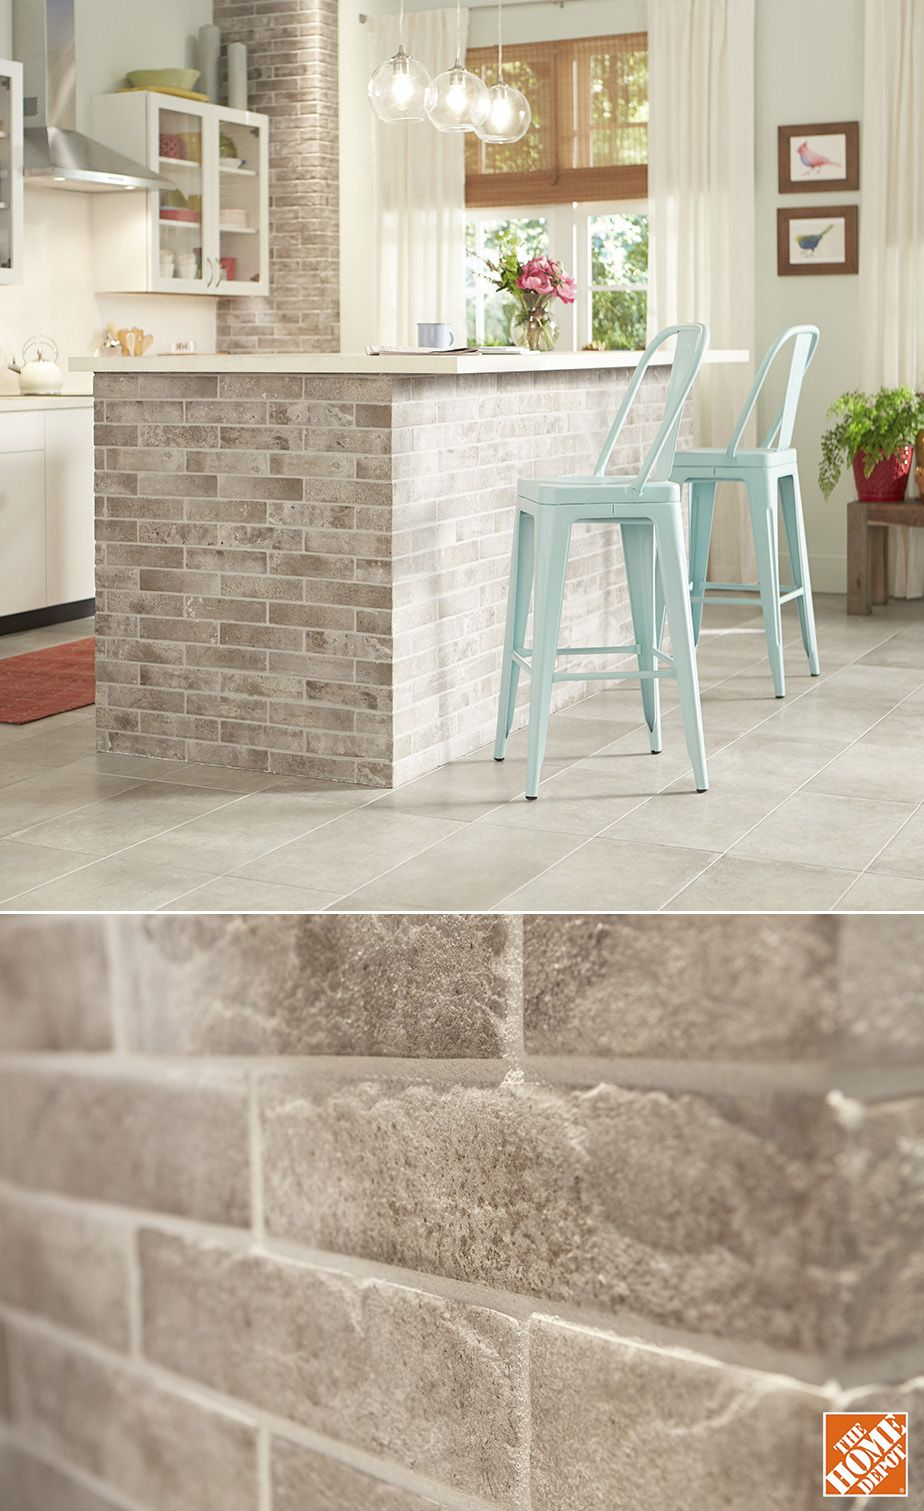 Msi Abbey Brick 2 1 3 In X 10 Glazed Porcelain Floor And Wall Tile 5 17 Sq Ft Case Faux